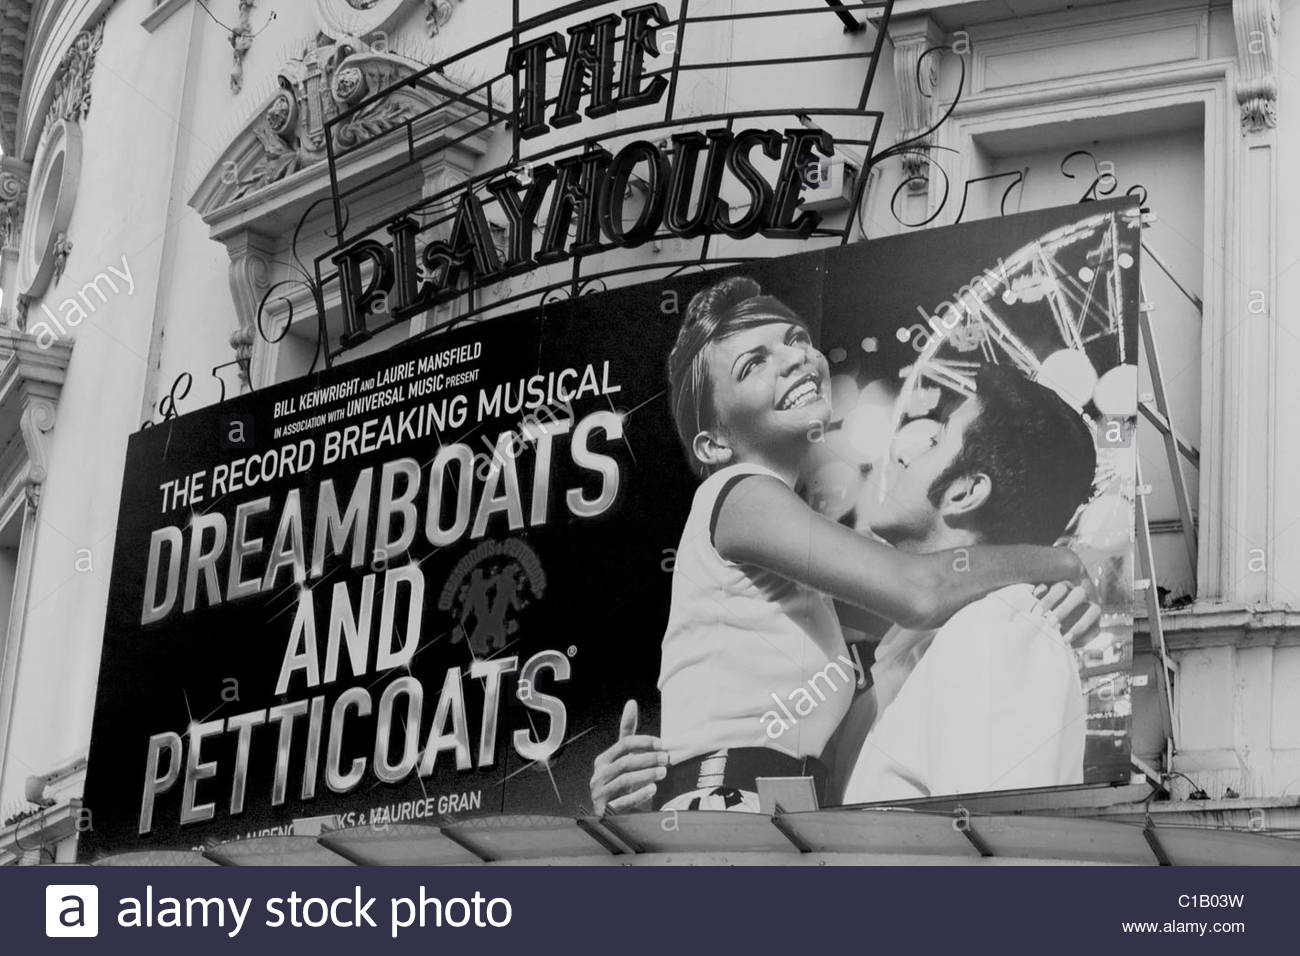 Theater Billboard Advertising Dream boats and Petticoats Black and White - Stock Image